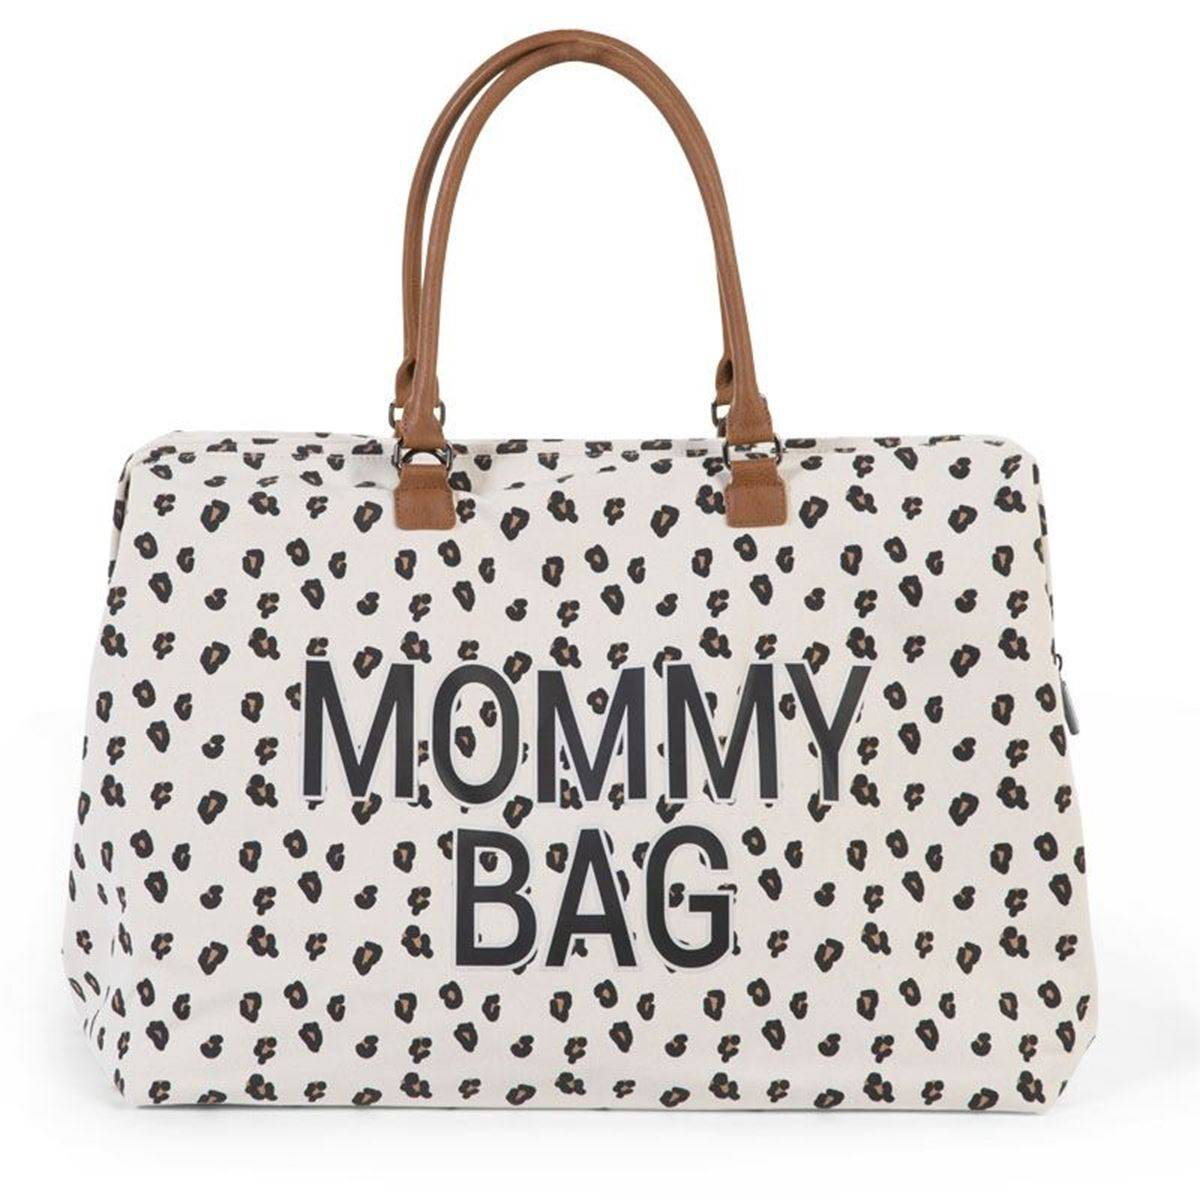 Childhome Mommy Bag, Stor Leopard Canvas